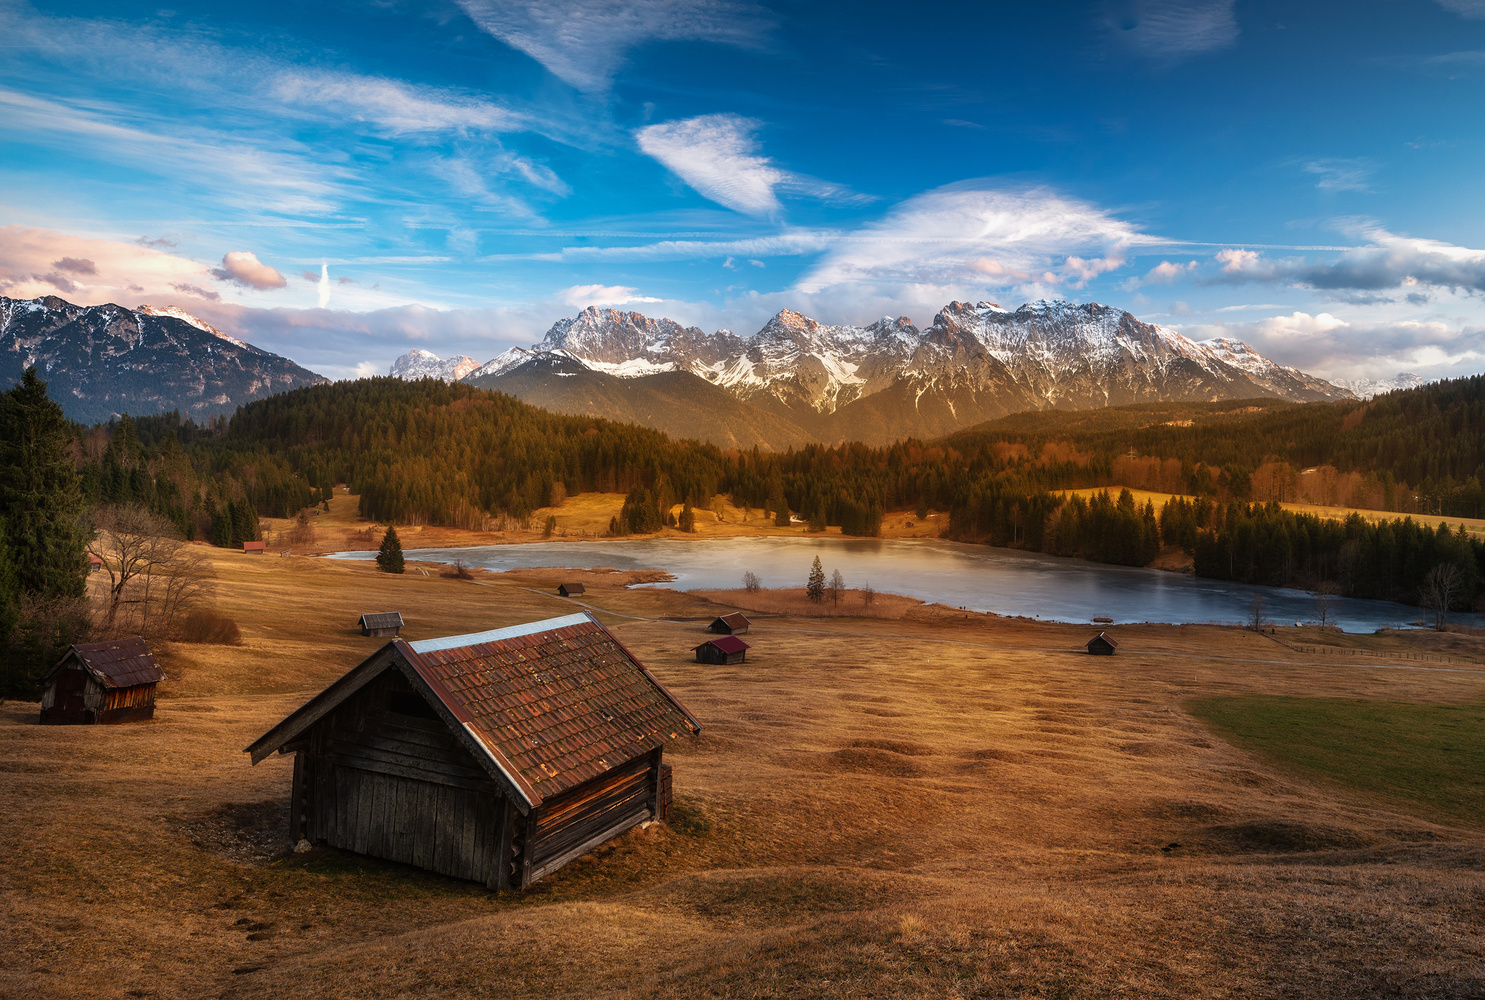 The Cabin in Rolling Hills by Michael Bottari